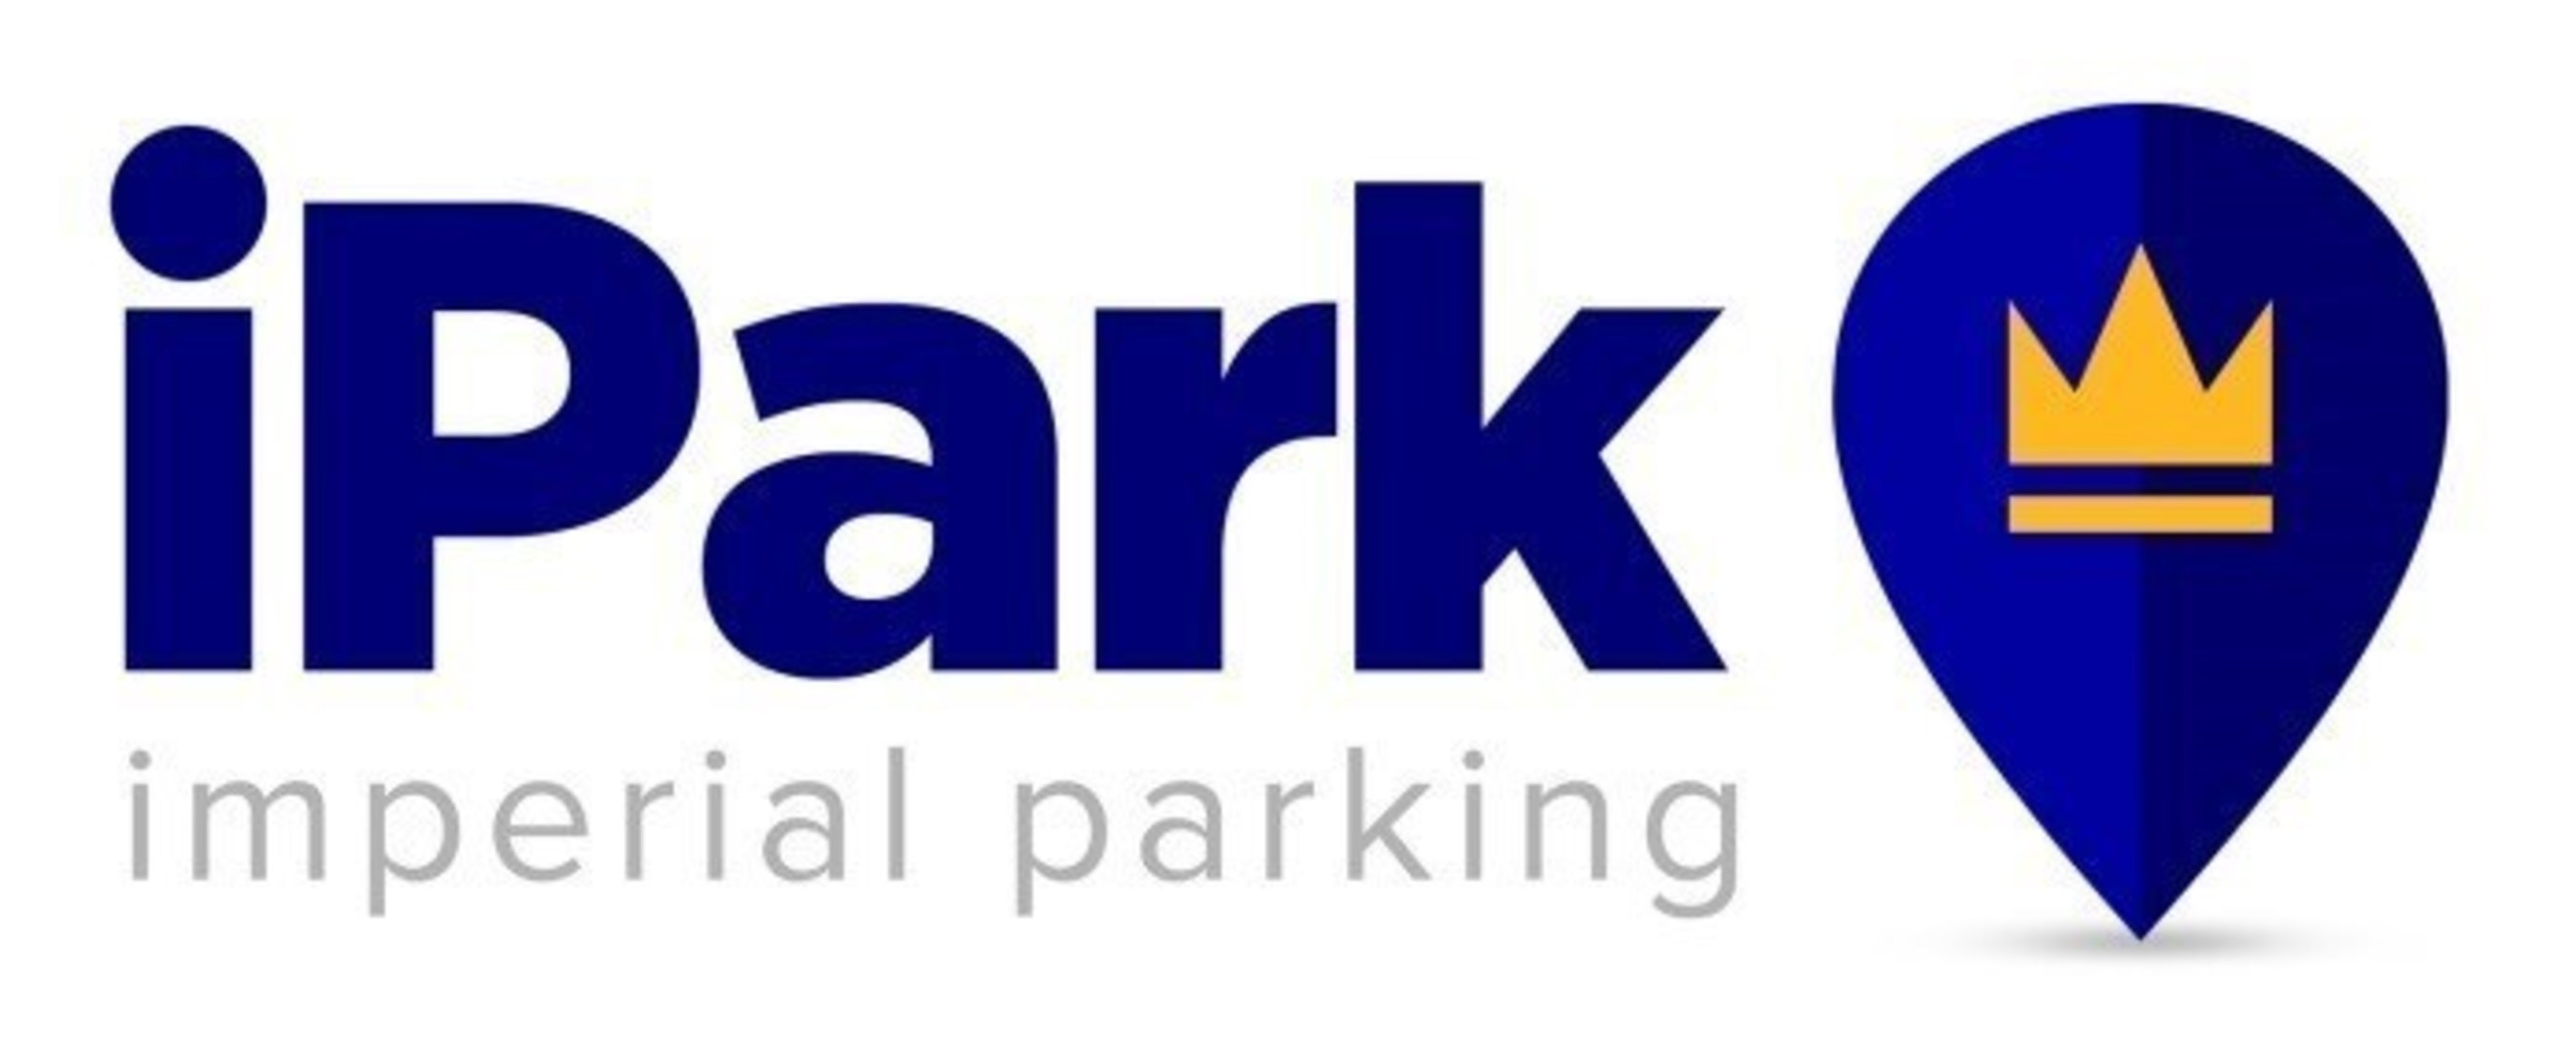 Founded by Jack Lerner, Imperial Parking Systems, now iPark, has been in the parking business for over 60 ...